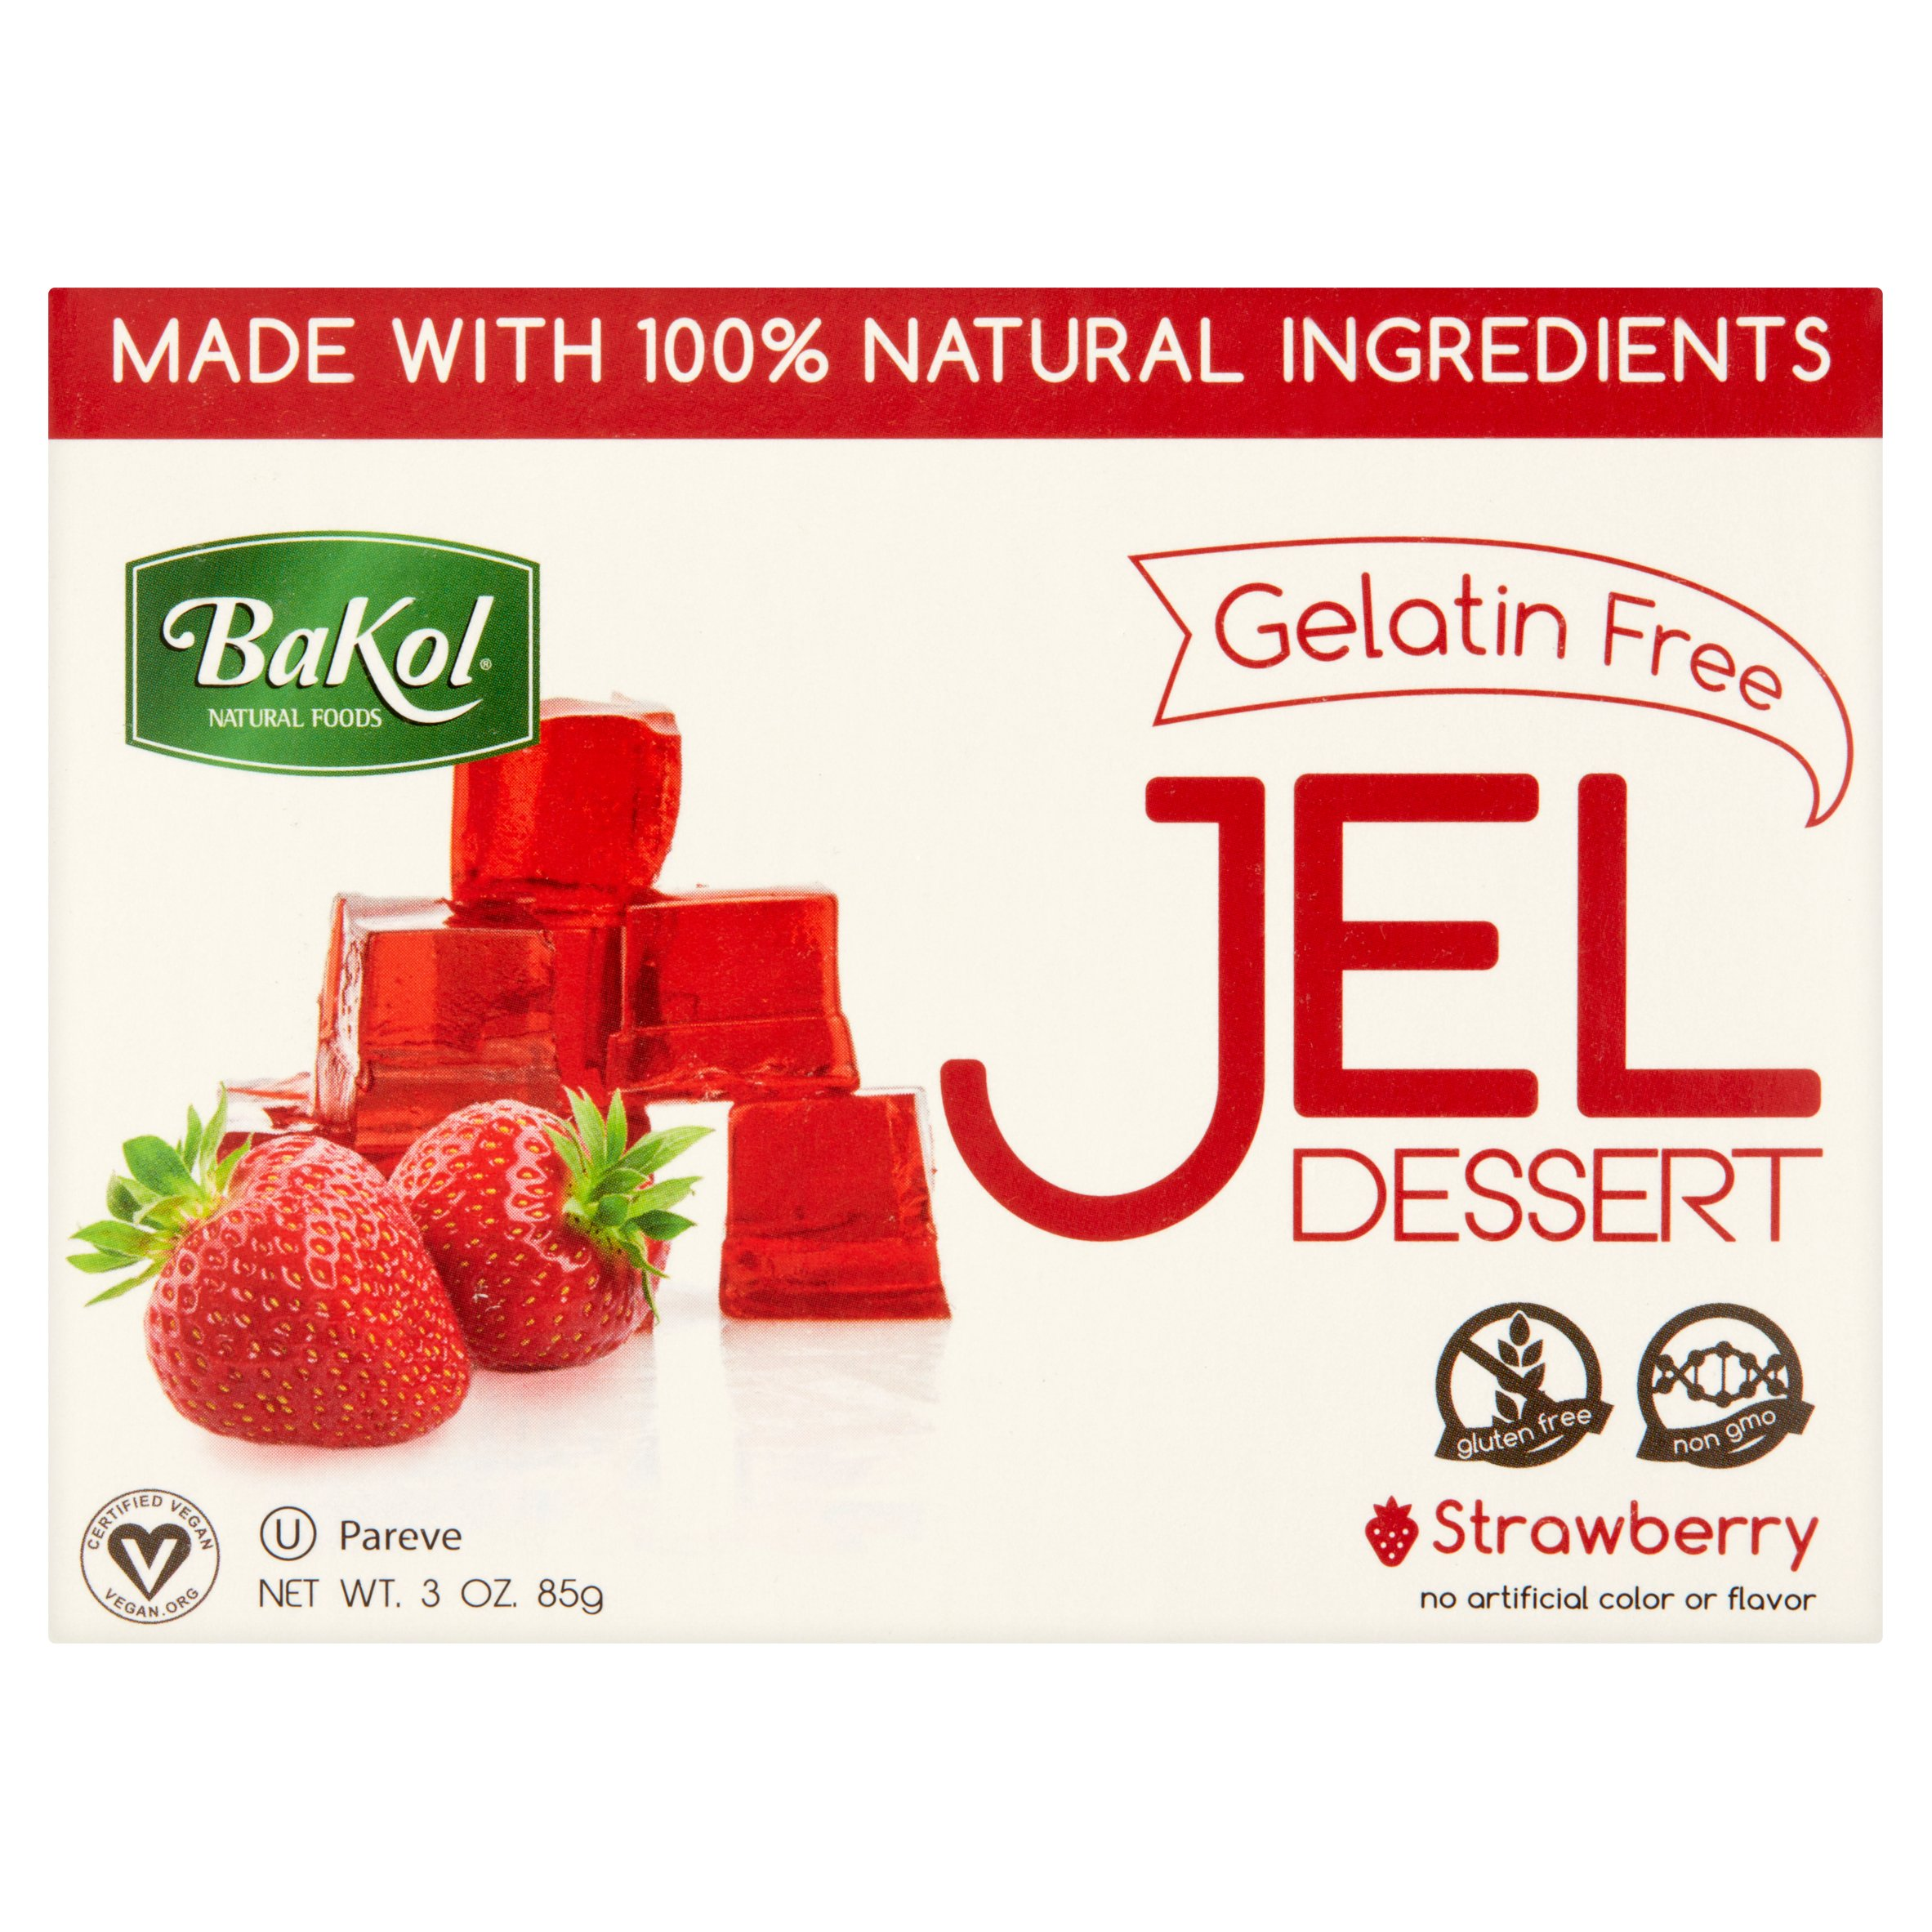 Bakol Gelatin Free Strawberry Jel Dessert, 3 oz by Bakol Foods